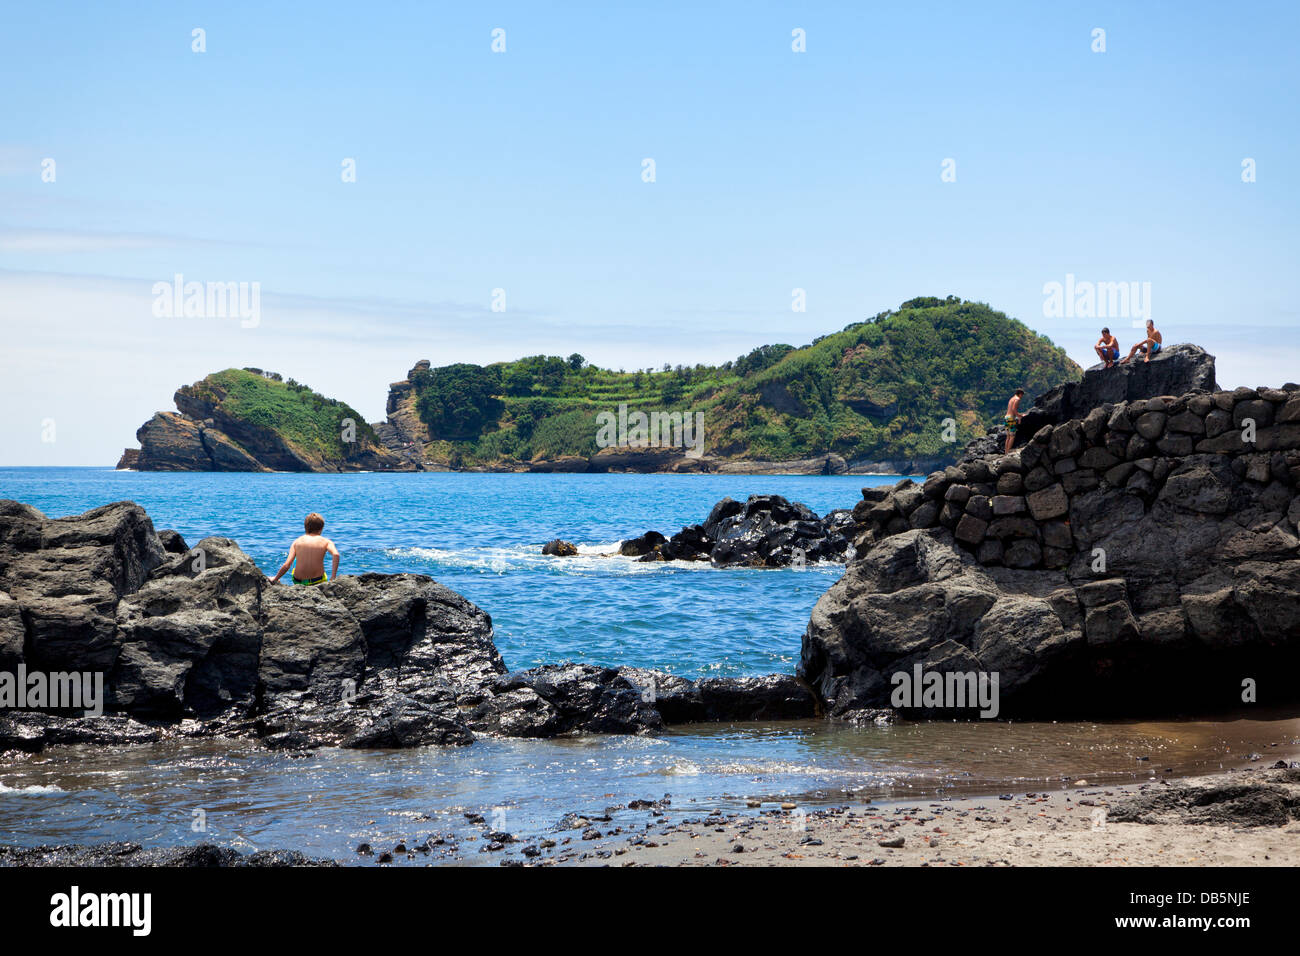 Boys playing on the rocks opposite to the islet of Vila Franca off São Miguel coast. - Stock Image